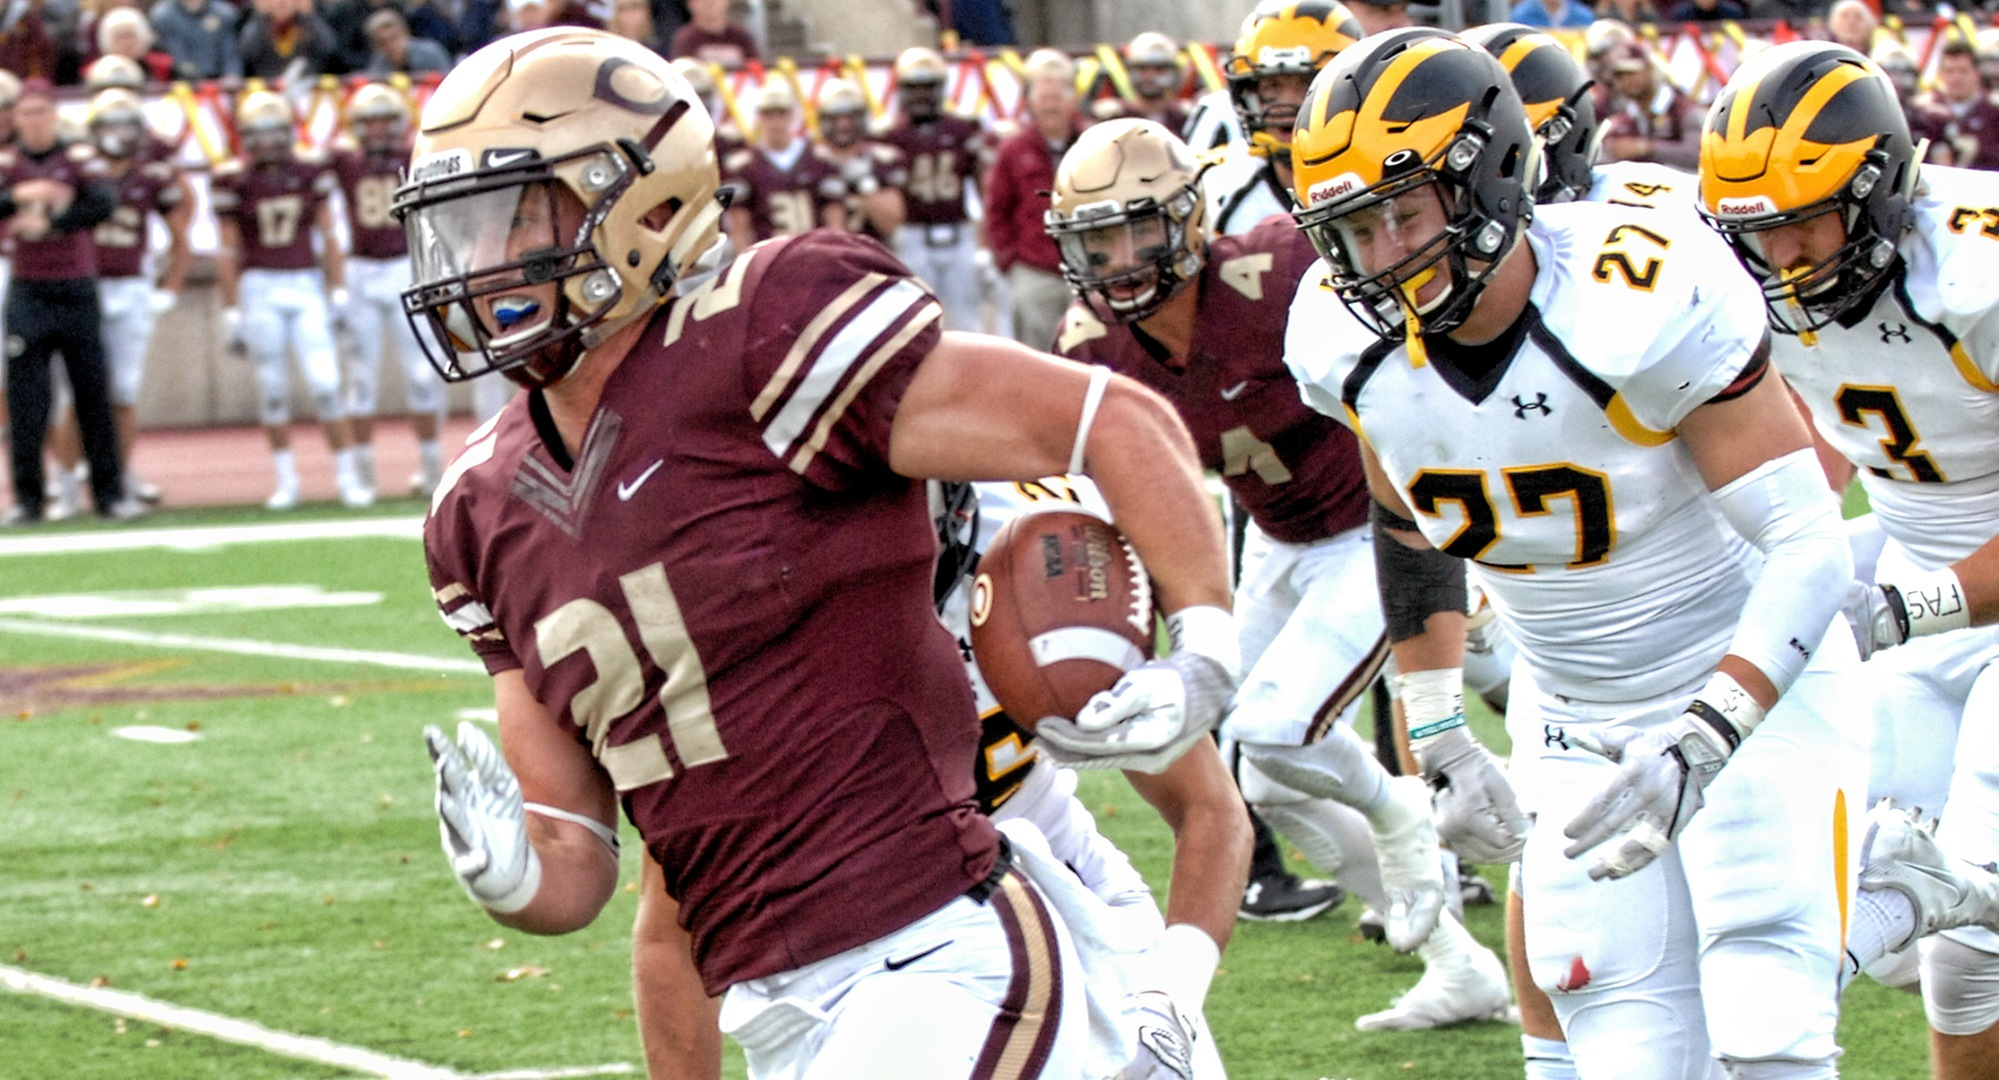 Senior Chad Johnson scored three TDs to break the school's all-time touchdown record in the Cobbers' 45-0 win at Hamline.